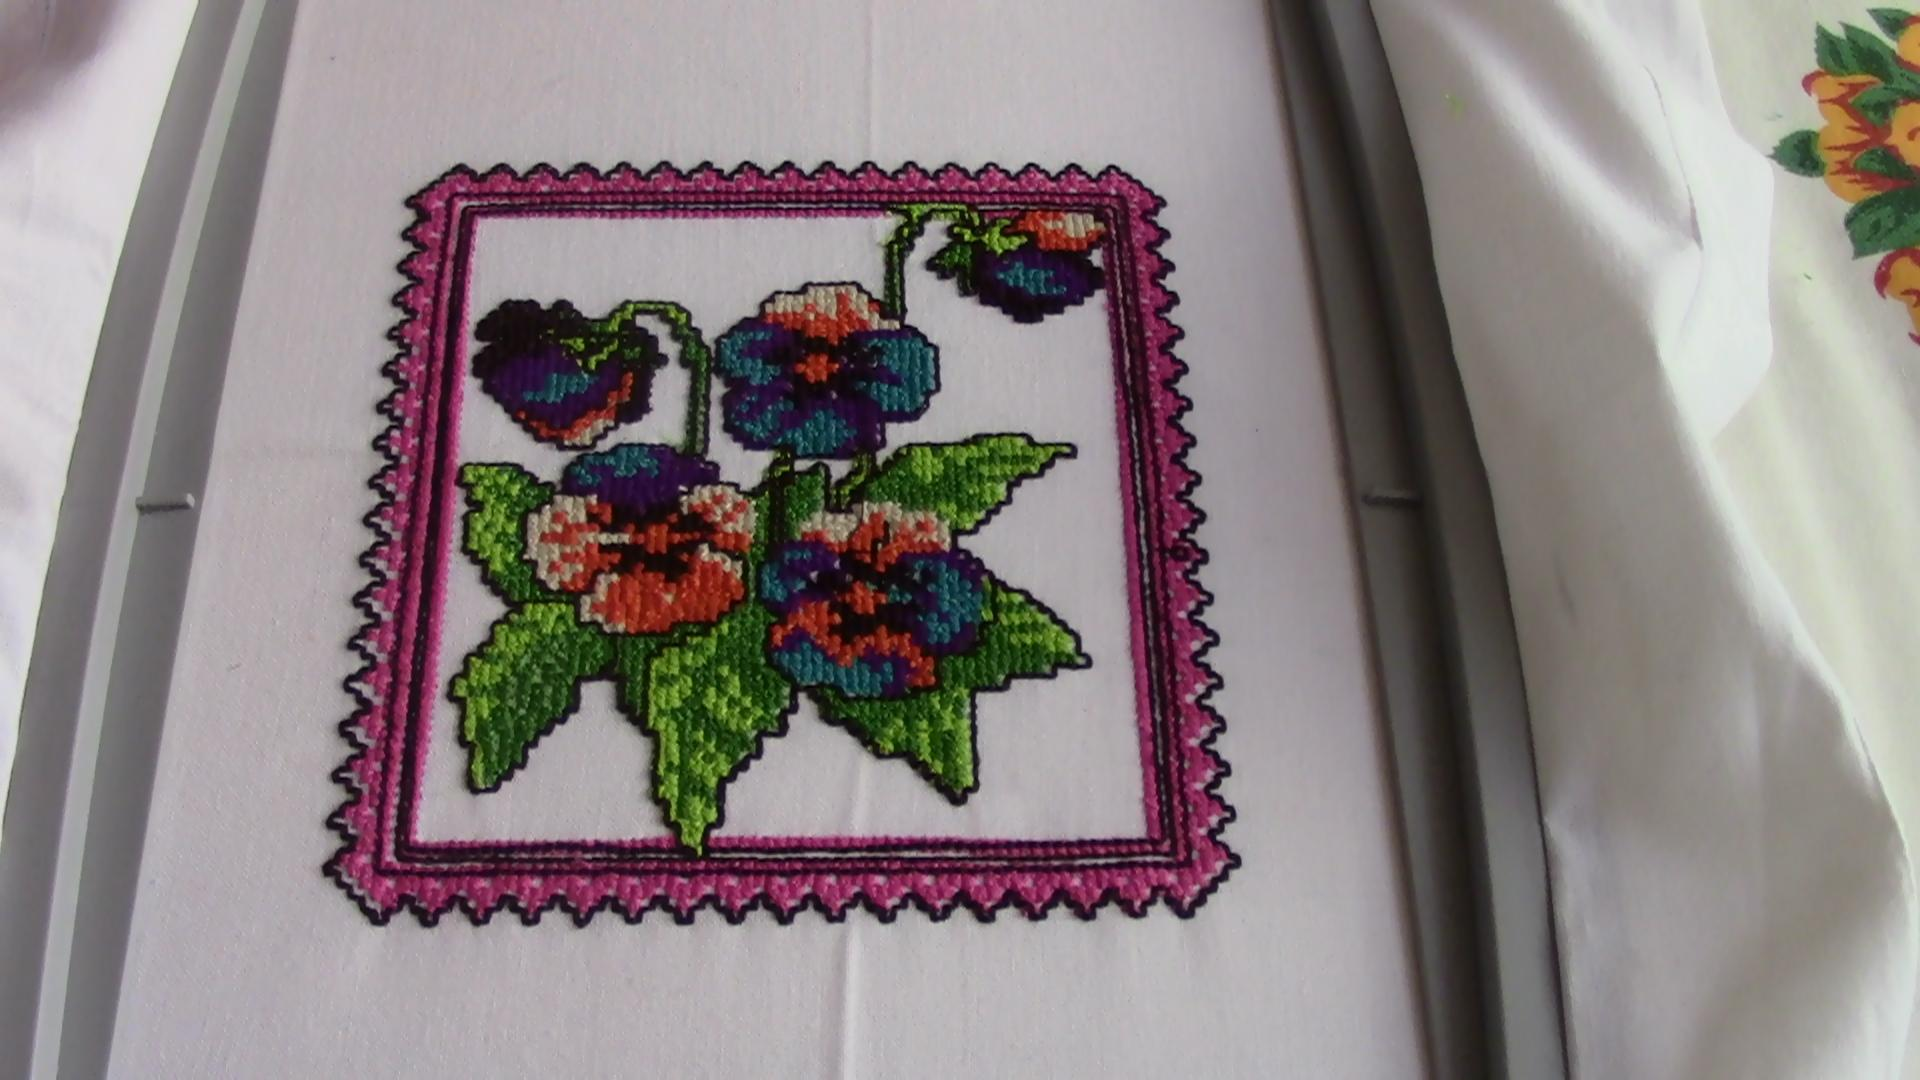 In hoop flower in frame cross stitch free embroidery design